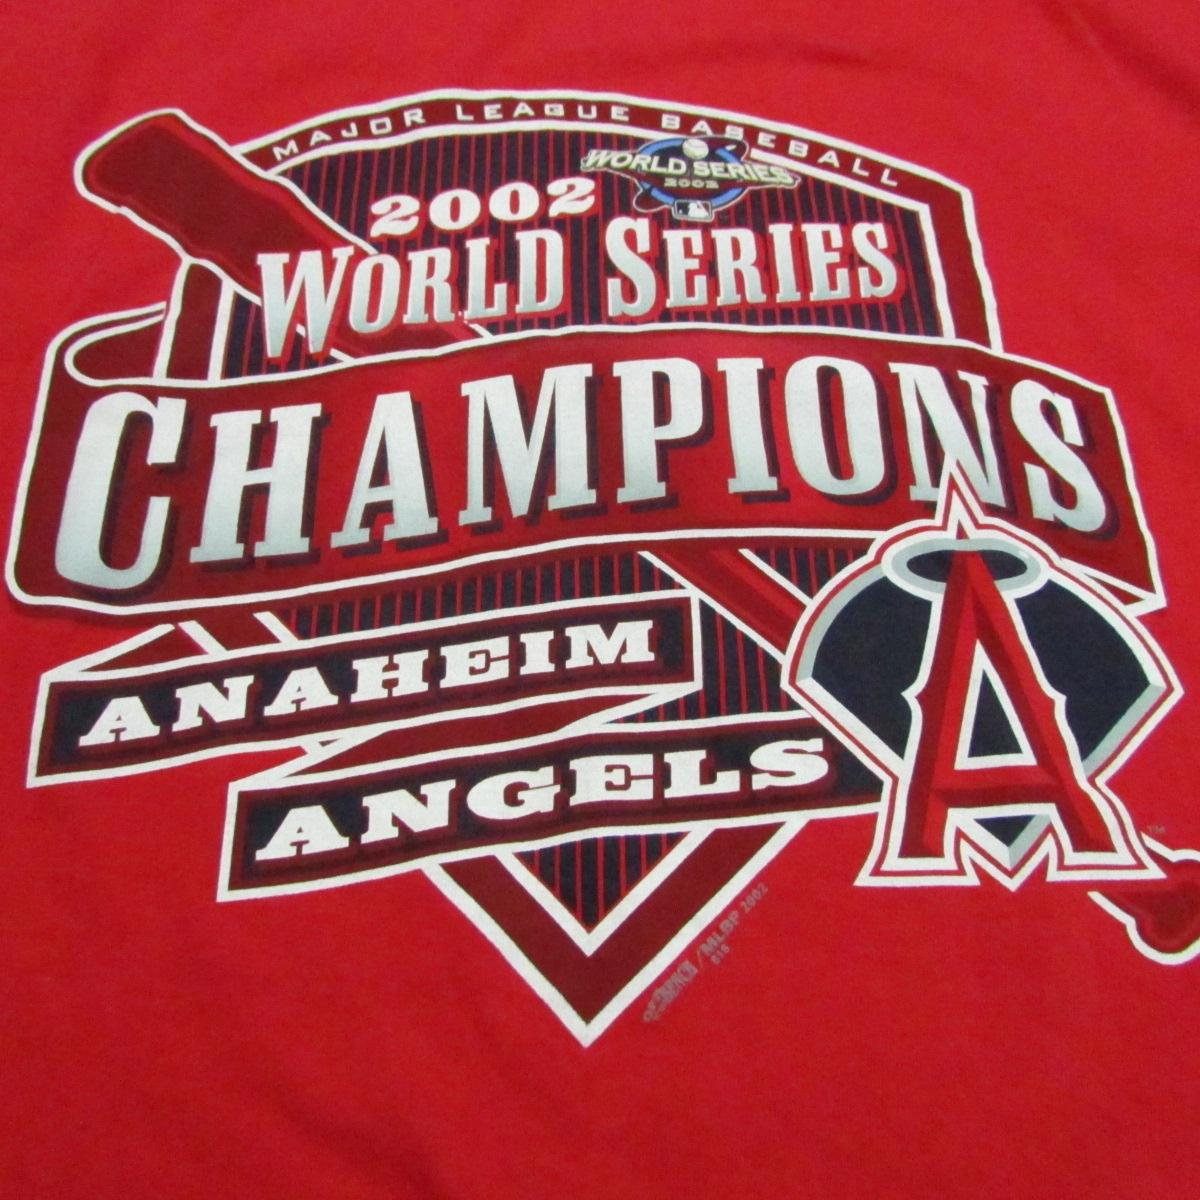 Anaheim Angels 2002 World Series Champions Baseball T-Shirt Sz L